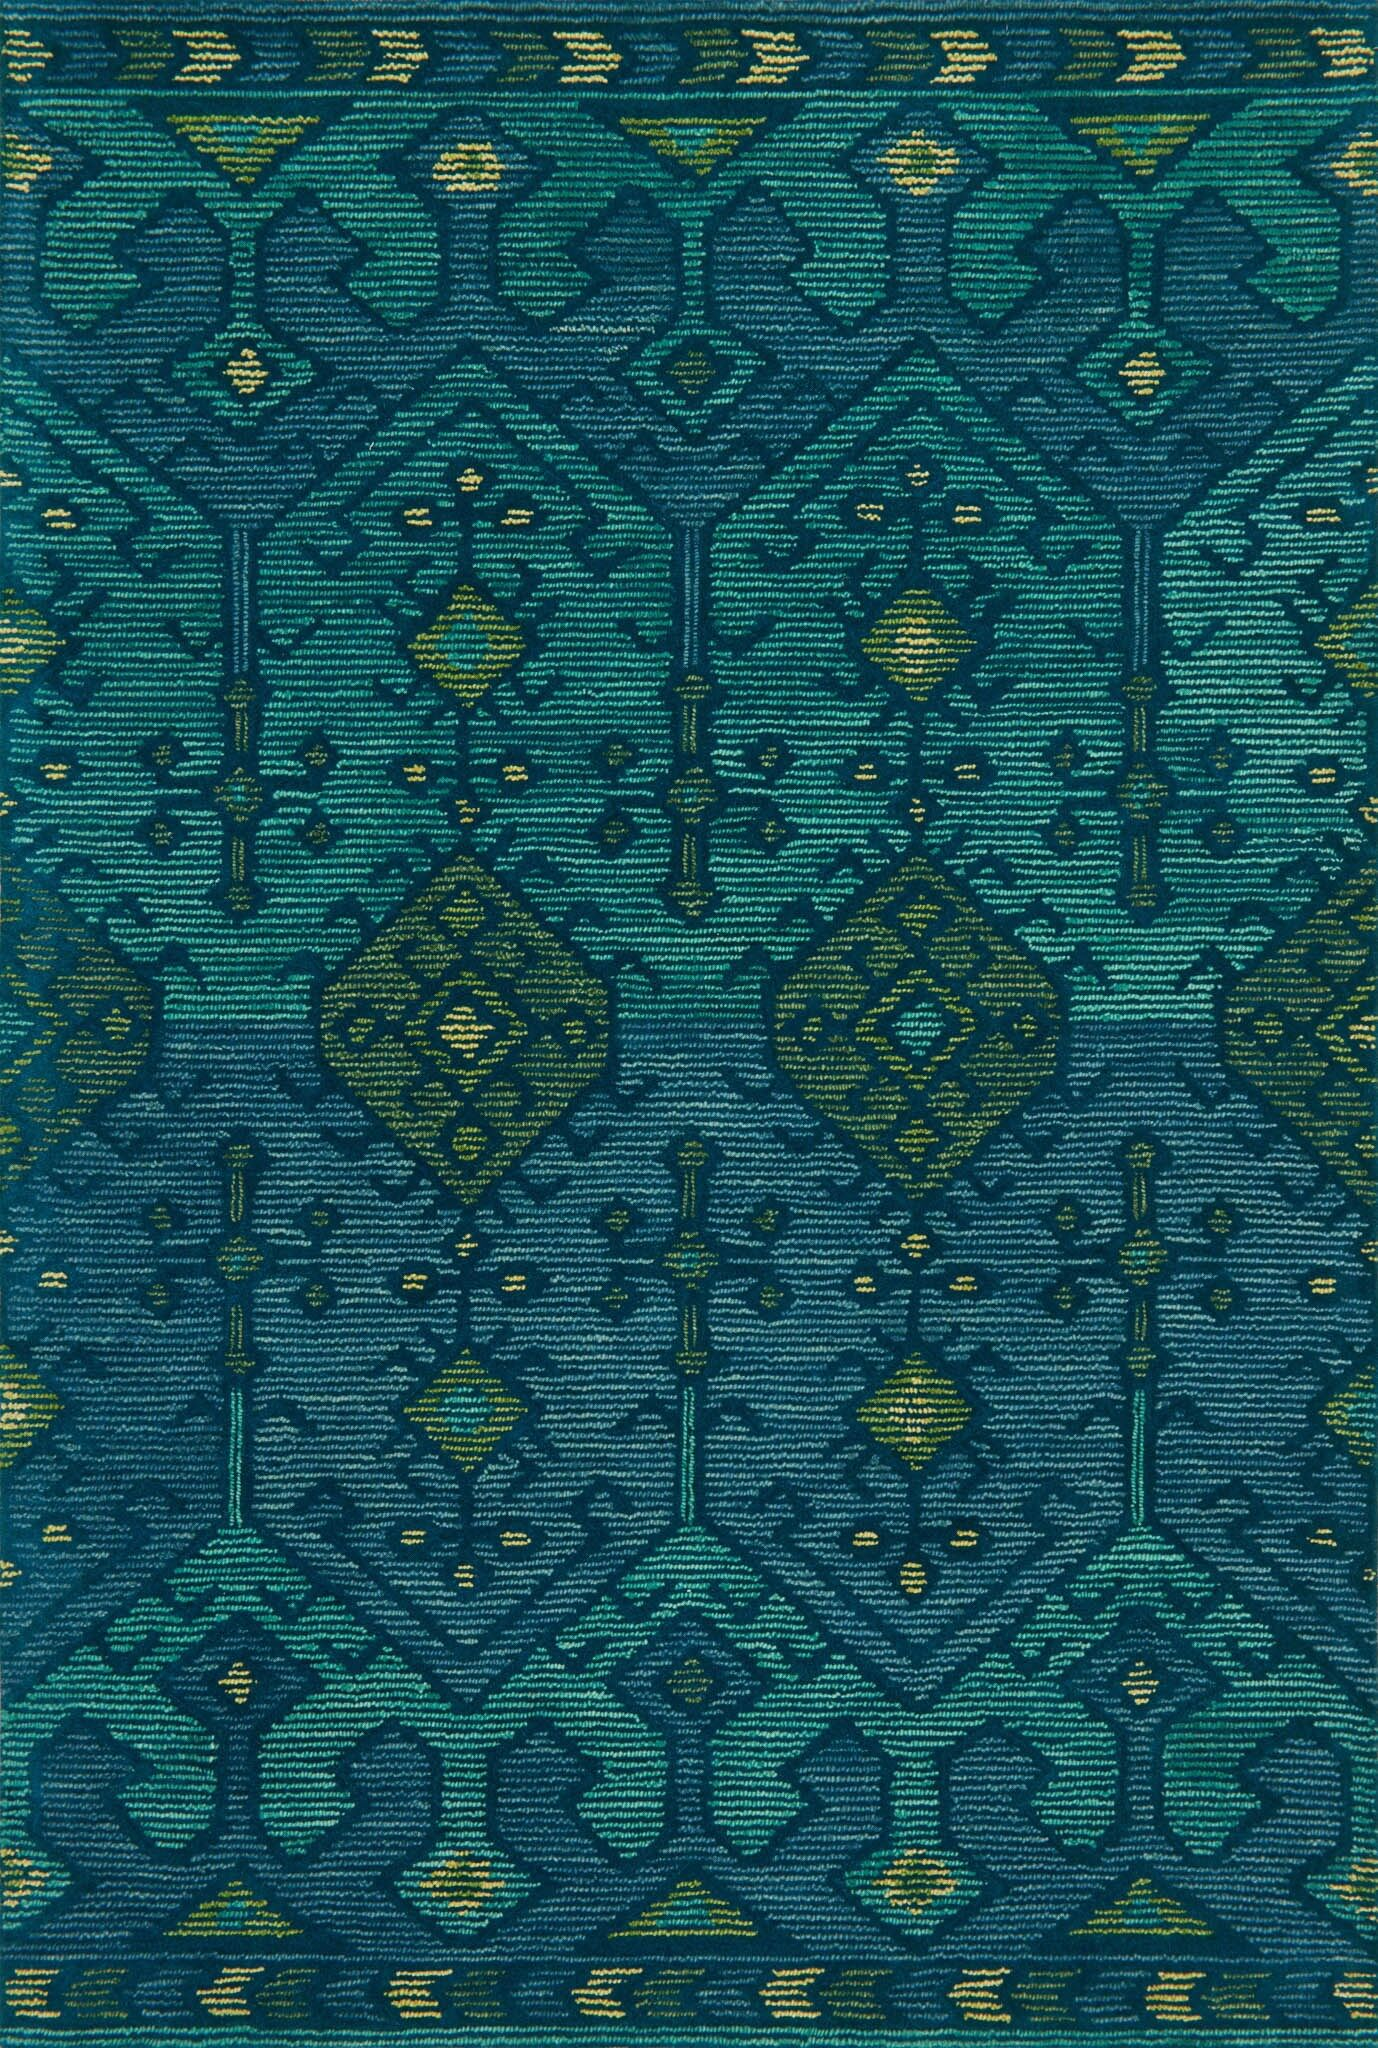 Wingman Hand-Tufted Green Area Rug Rug Size: Rectangle 5' x 7'6